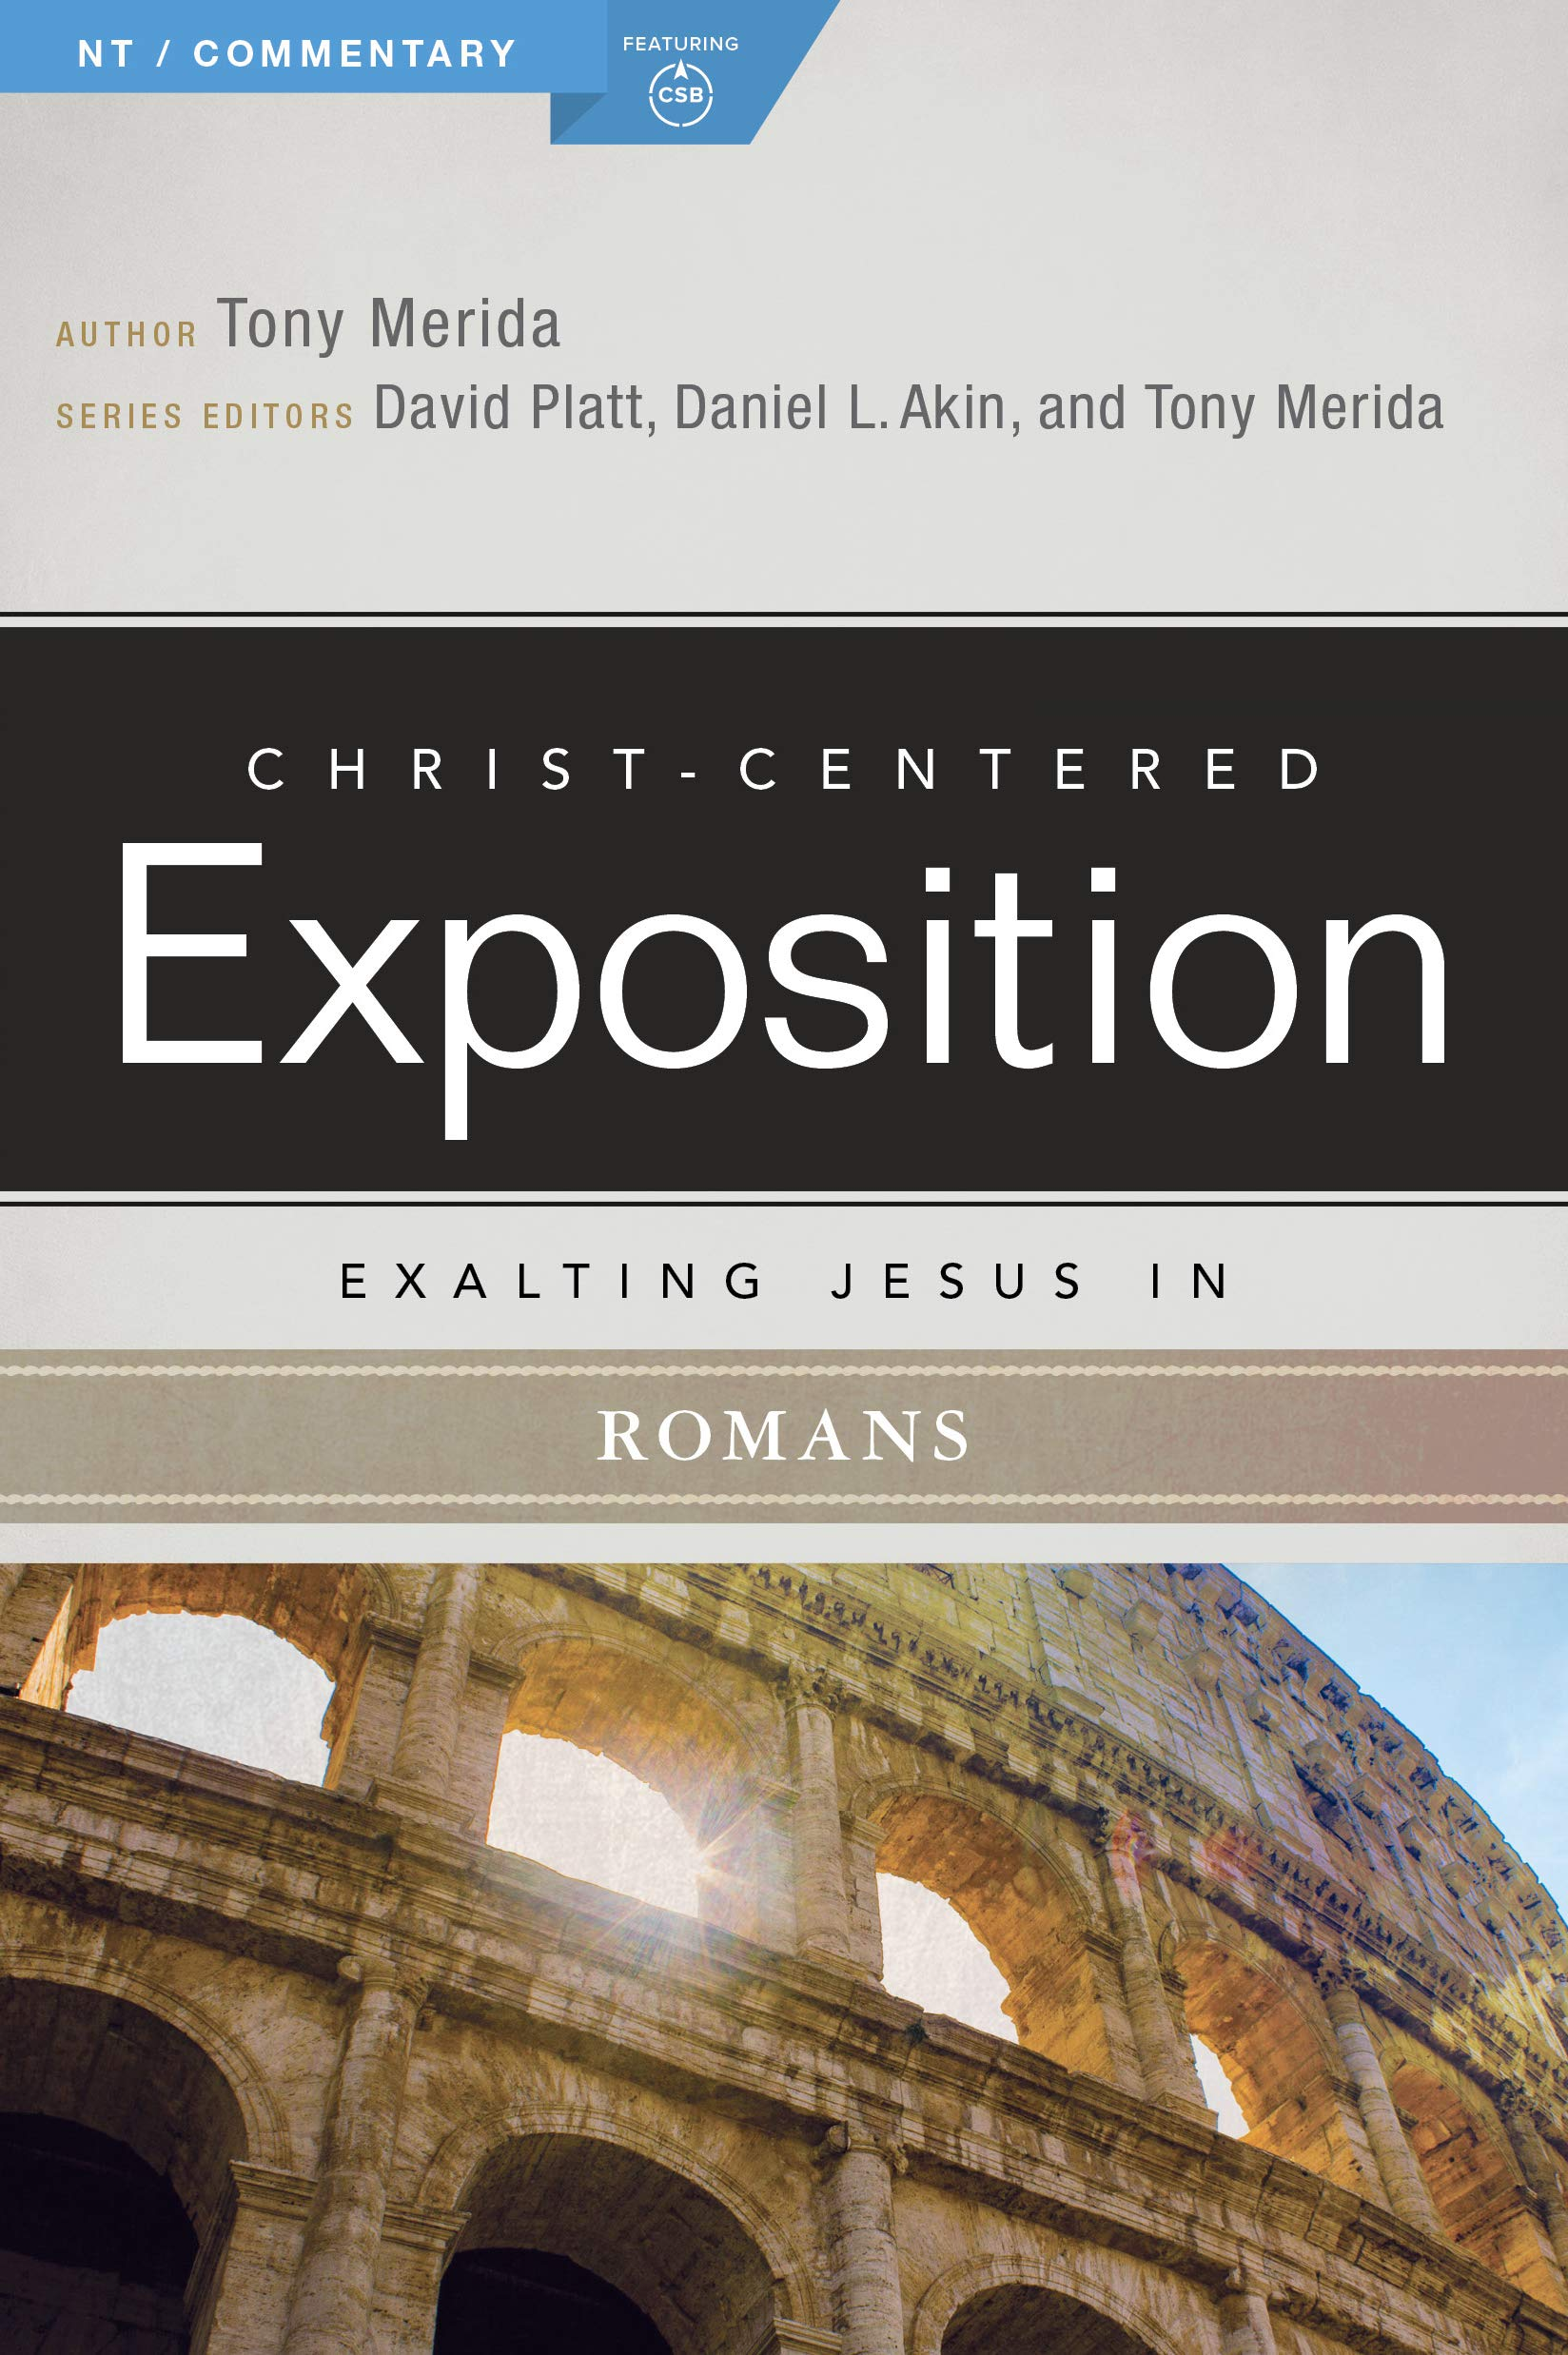 Exalting Jesus in Romans (Christ-Centered Exposition Commentary)